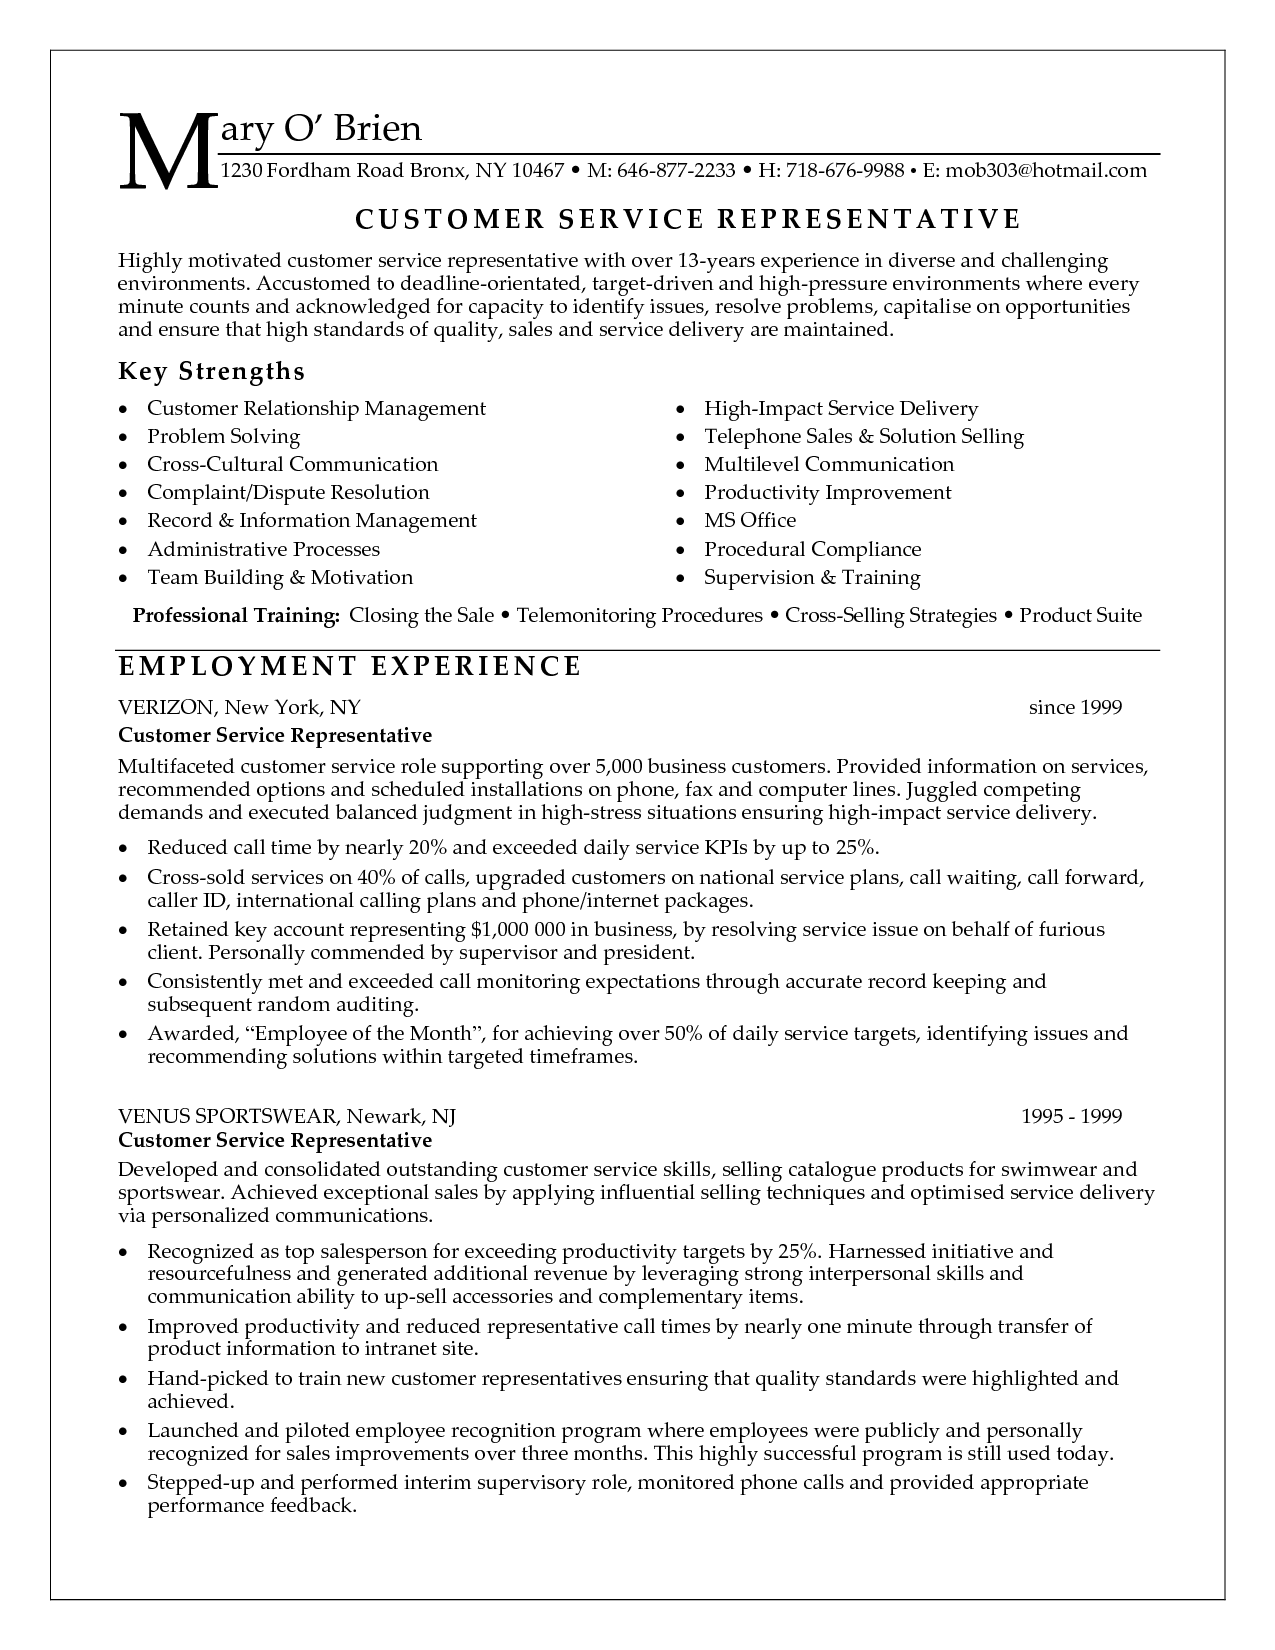 Resume Template Pinterest Pin By Jobresume On Resume Career Termplate Free